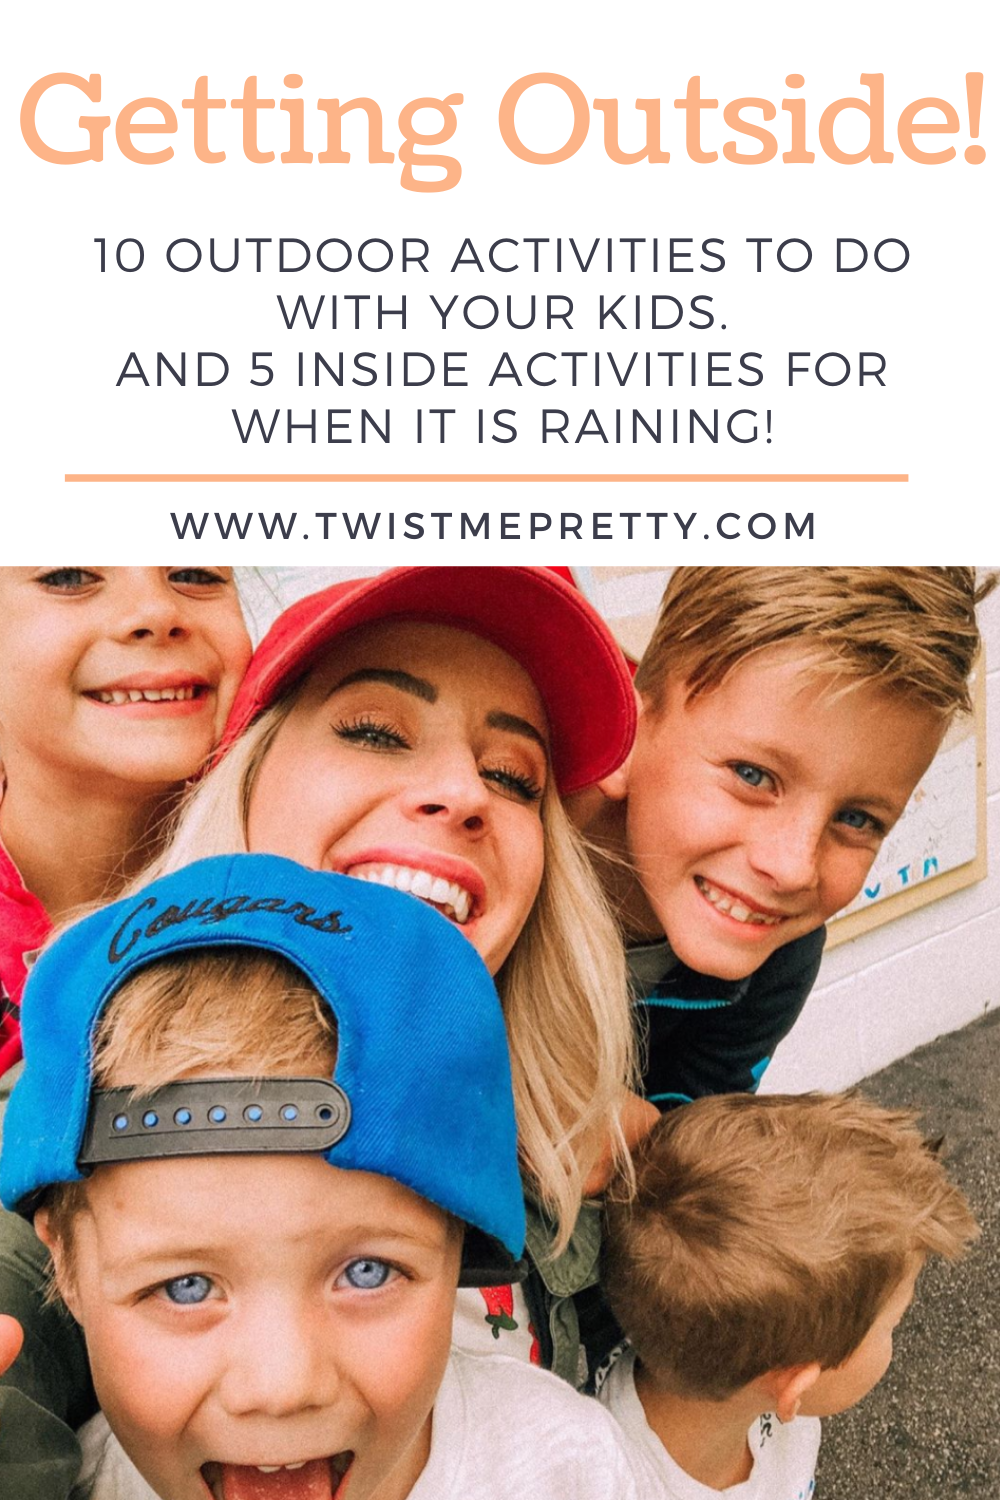 Getting Outside! 10 outdoor activities to do with your kids and 5 inside activities for when it is raining! www.twistmepretty.com